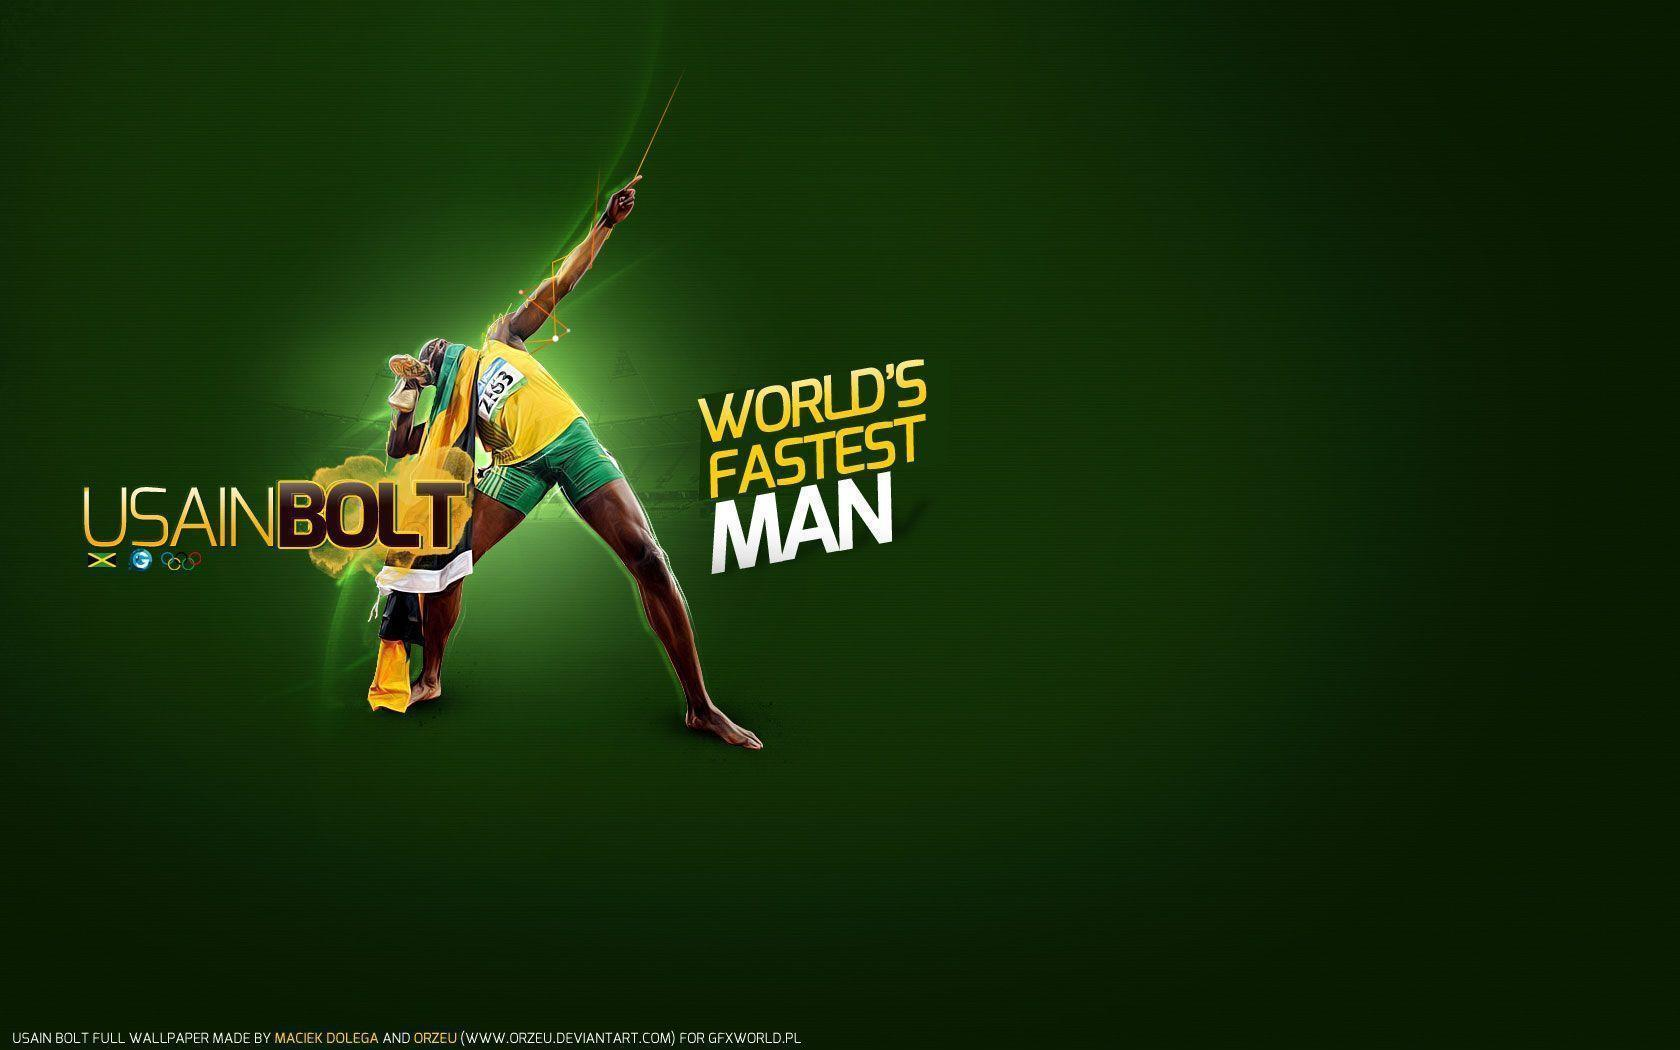 Free Wallpapers - Usain Bolt 1680x1050 wallpaper